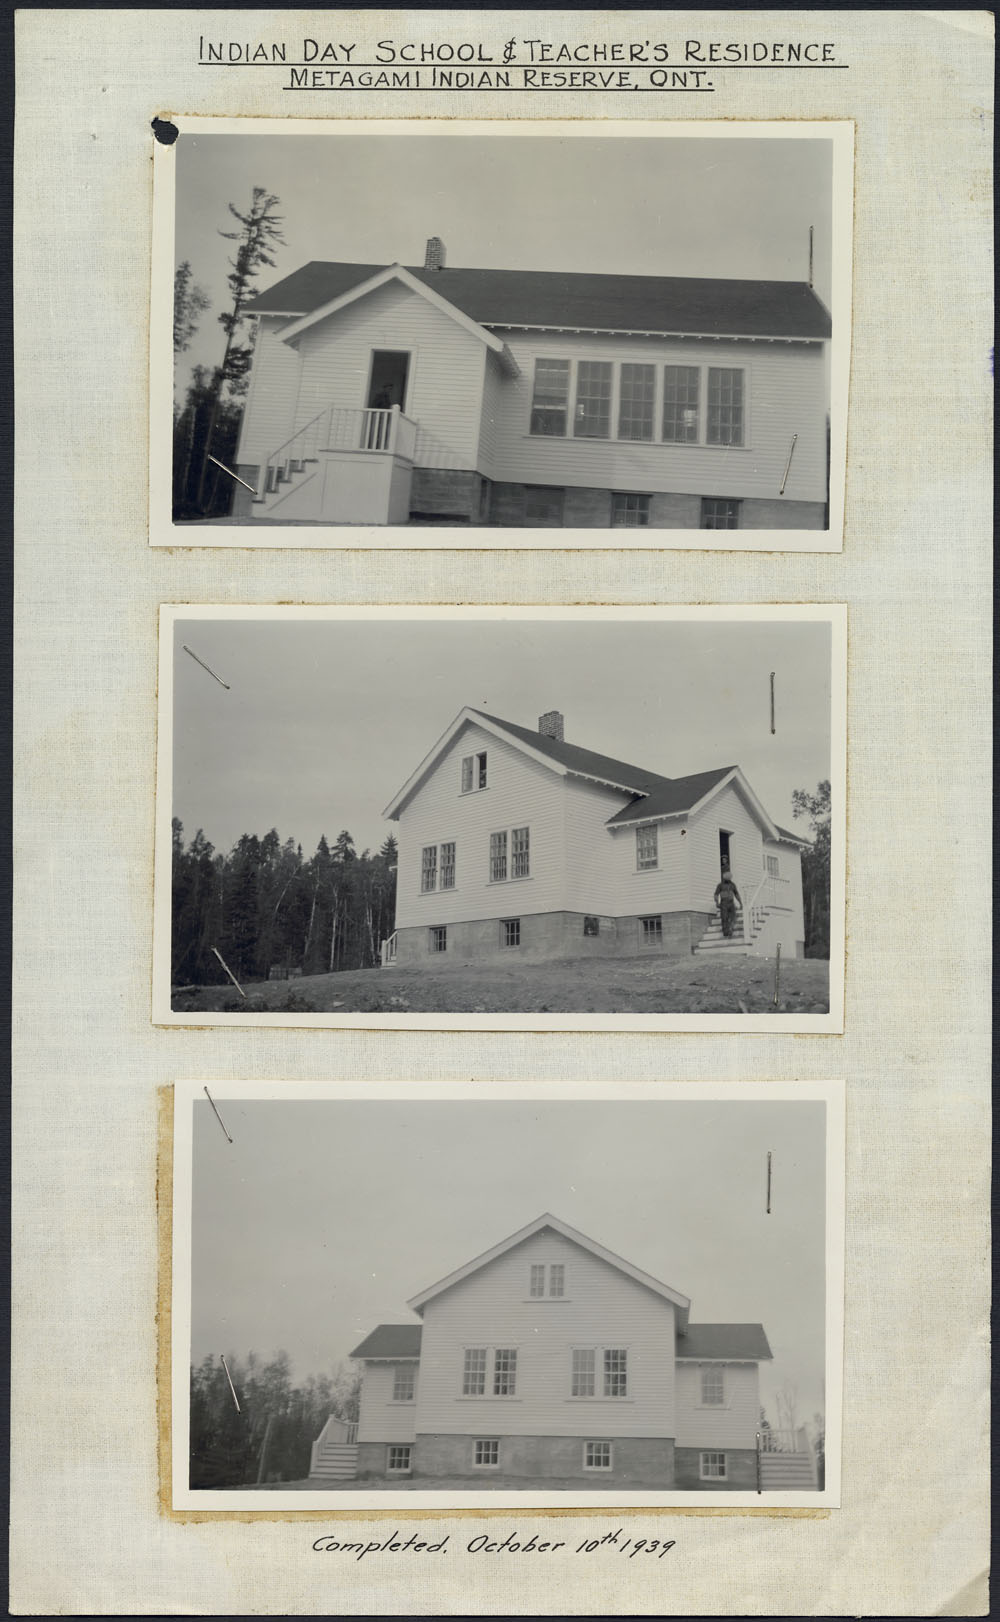 Mattagami Indian Day School and teacher's residence, three exterior views, Gogama, after October 10, 1939